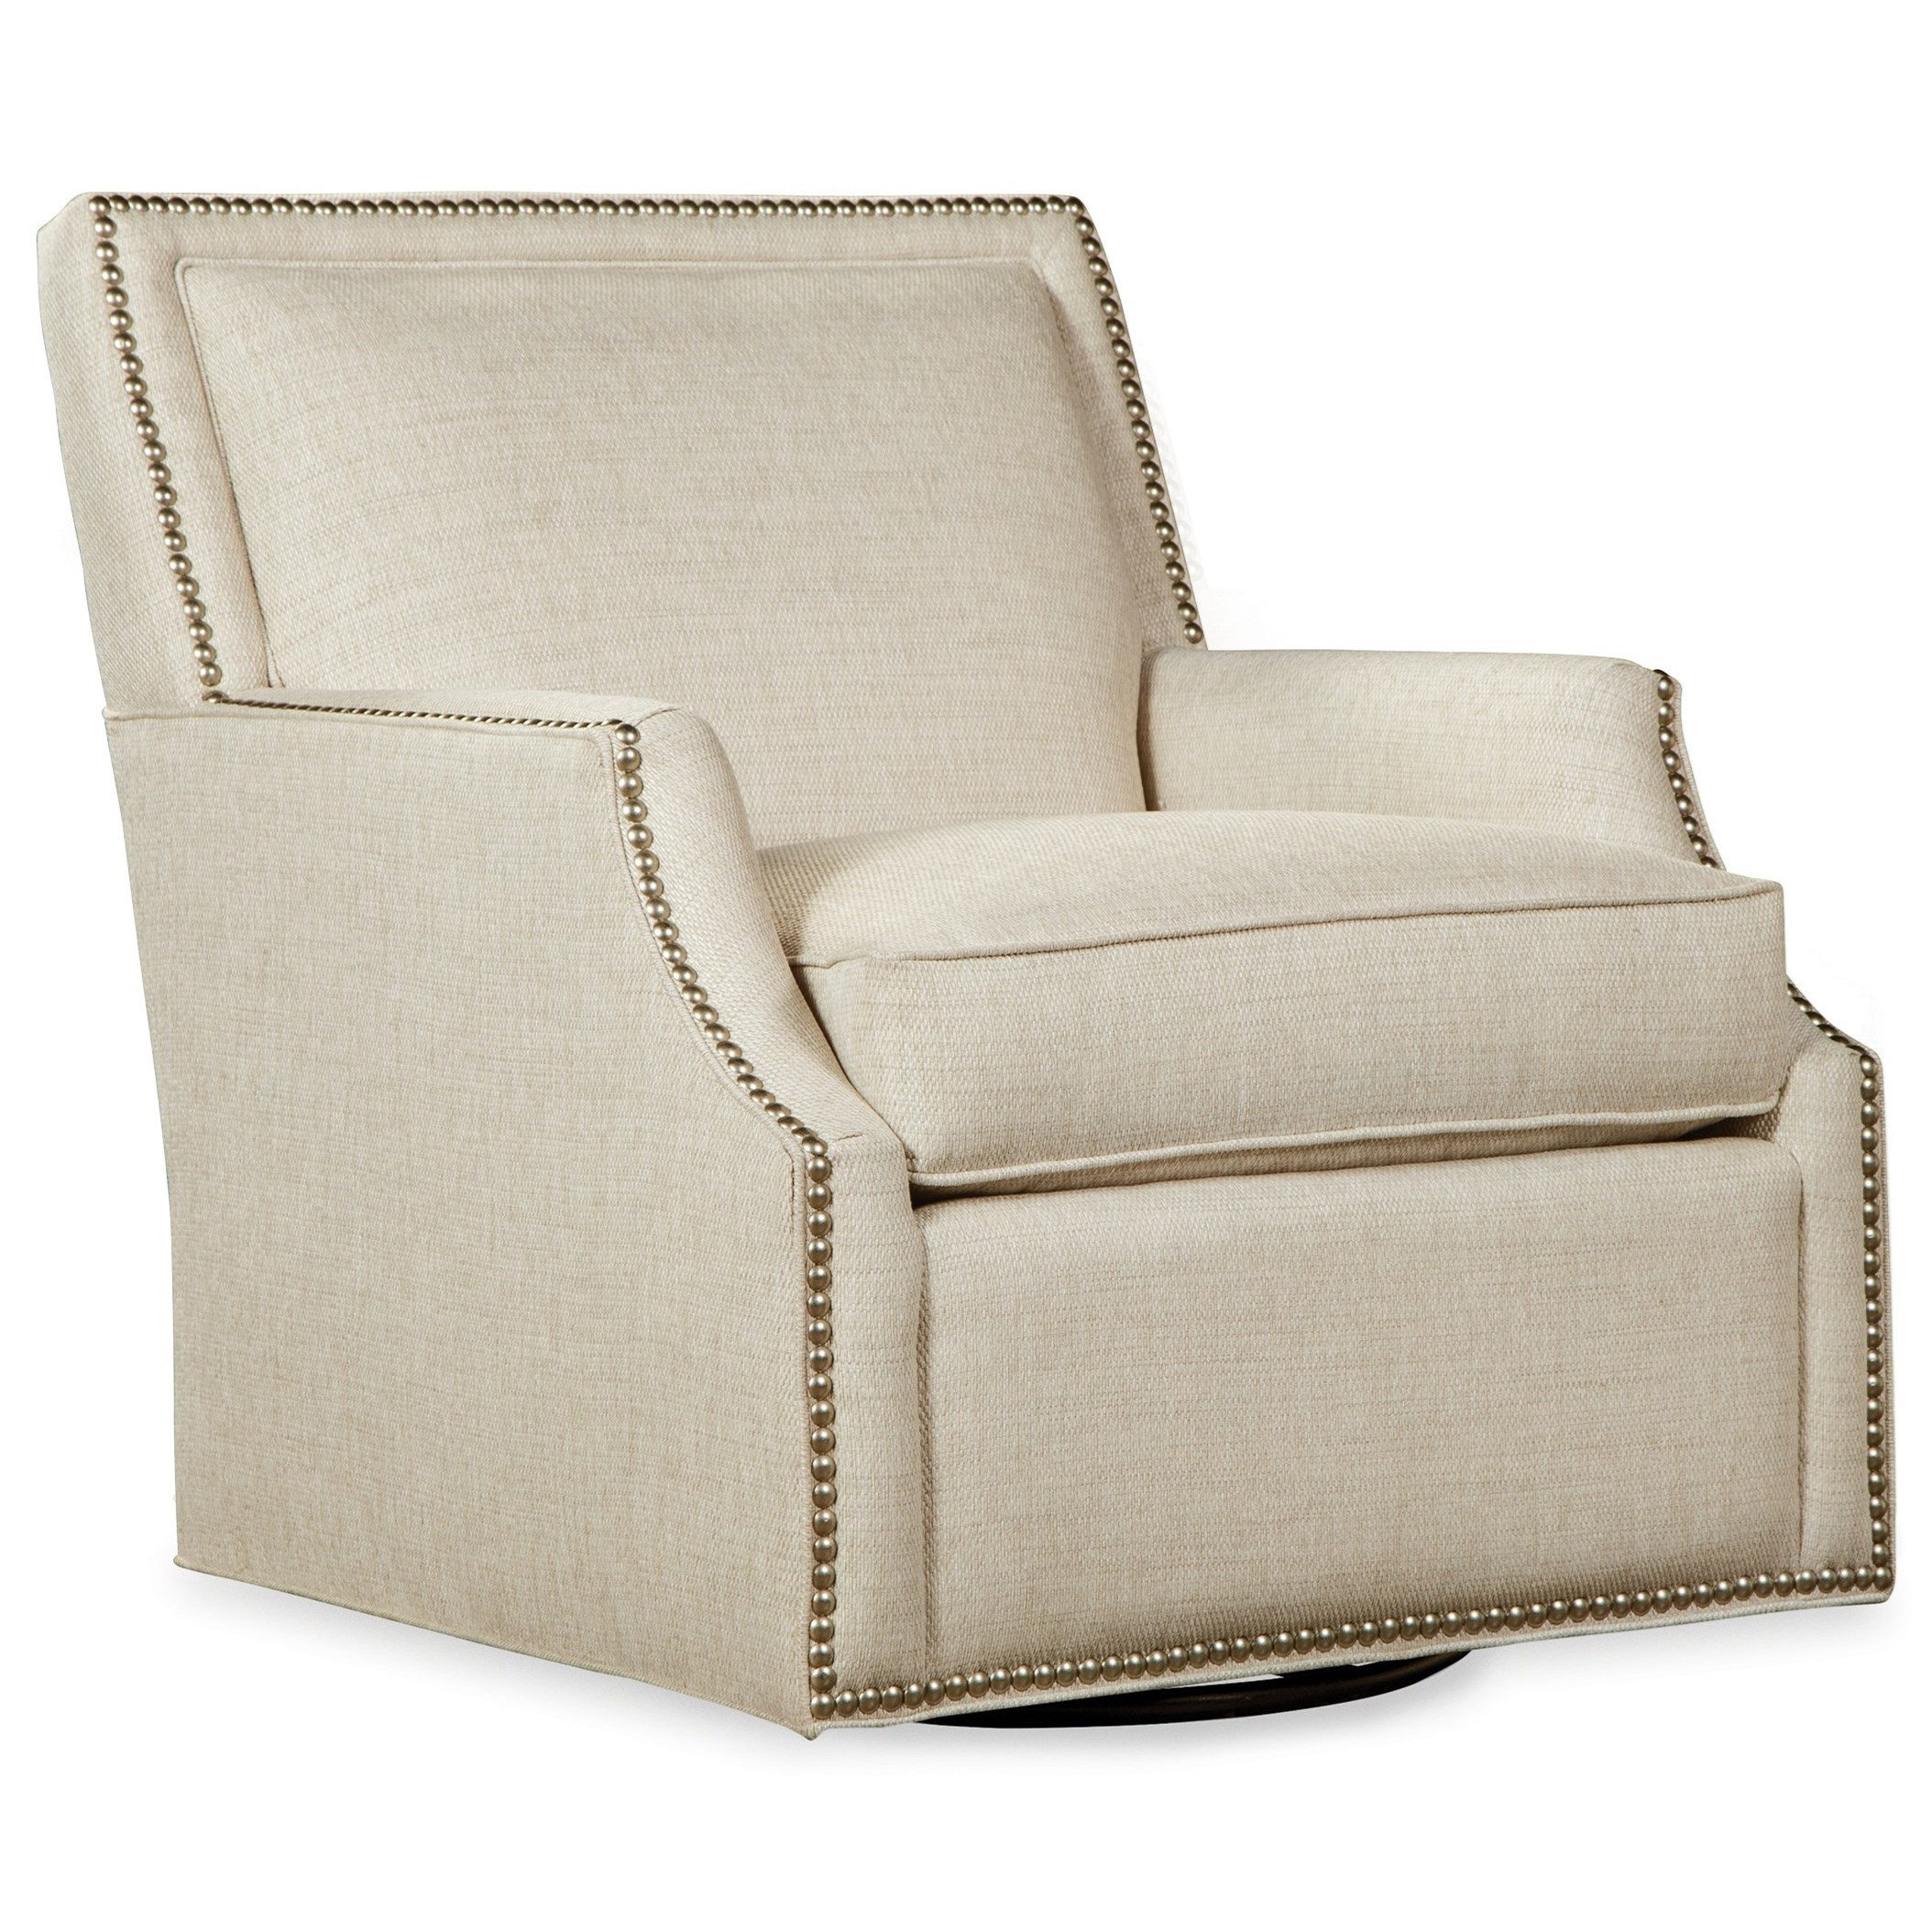 003710 Swivel Chair by Craftmaster at Baer's Furniture